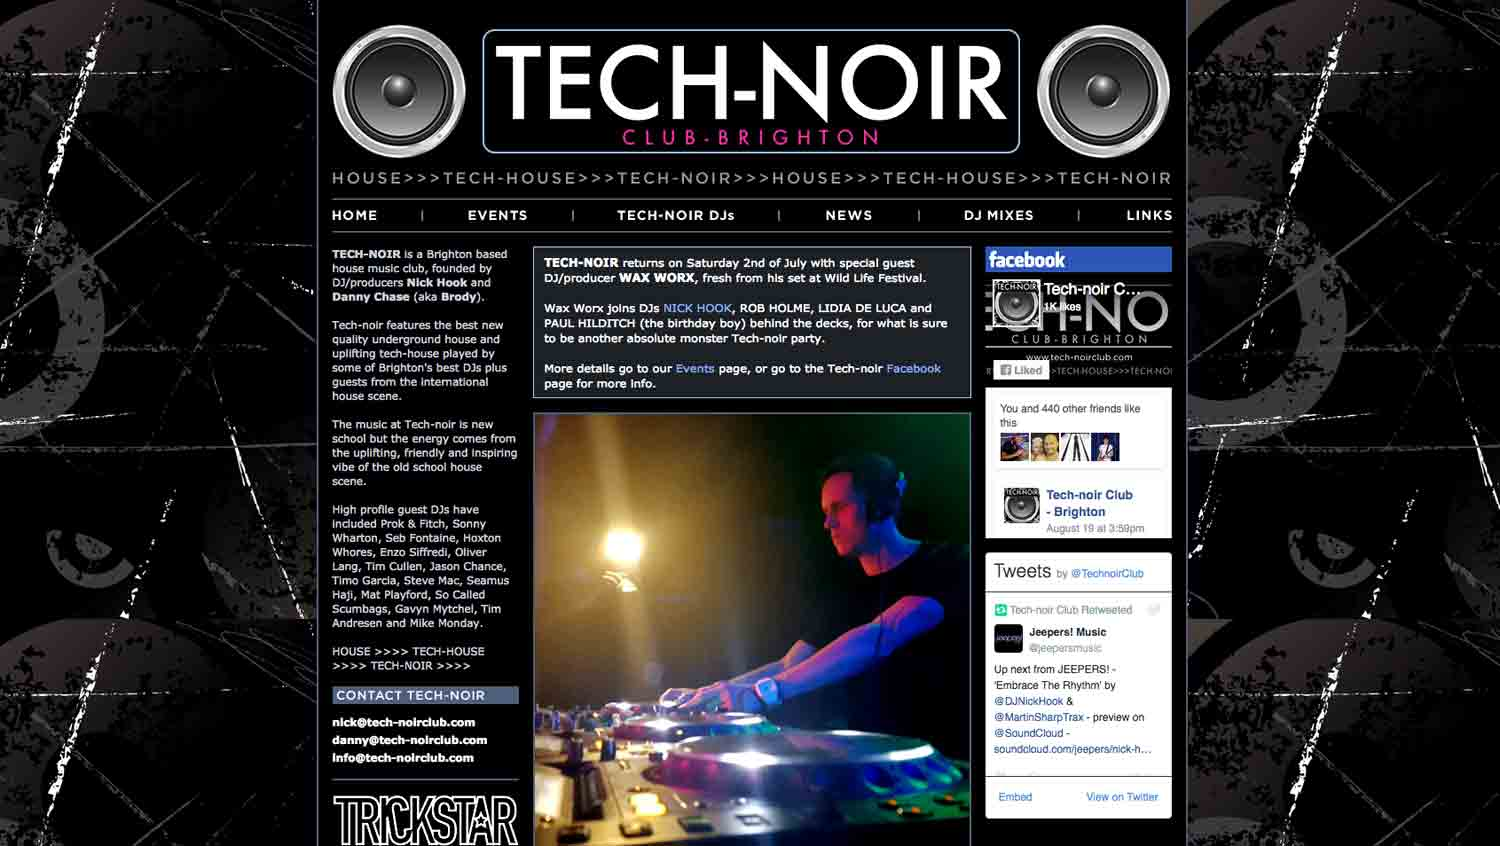 Tech-noir Club website - designed by Hook Web & Print